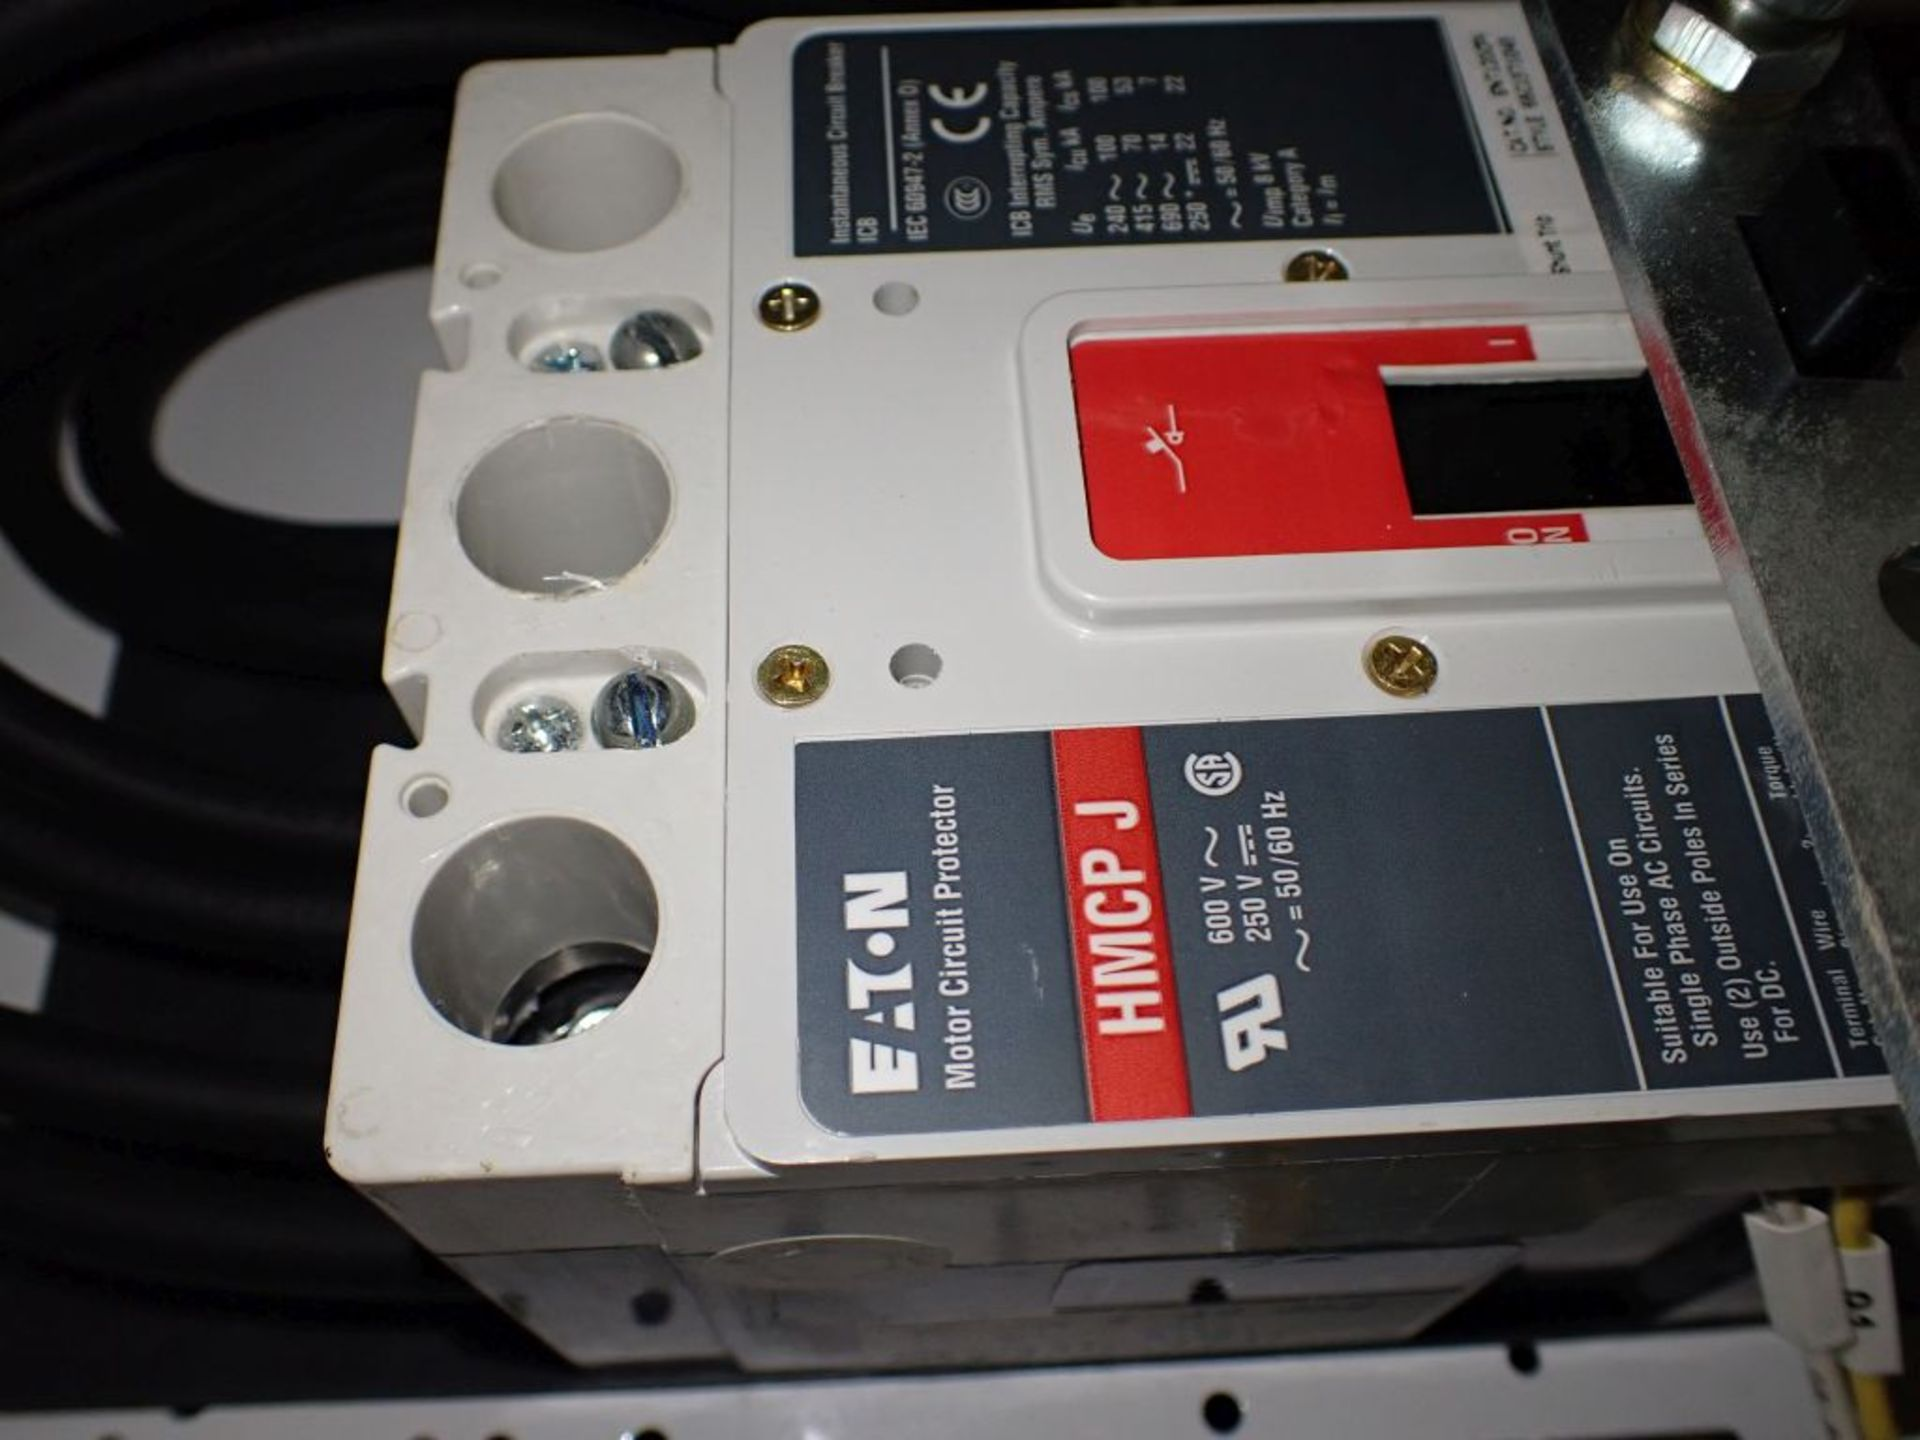 Eaton Freedom 2100 Series Motor Control Center | (11) F206-30A-10HP; (5) F206-15A-10HP; (1) SVX900- - Image 54 of 102